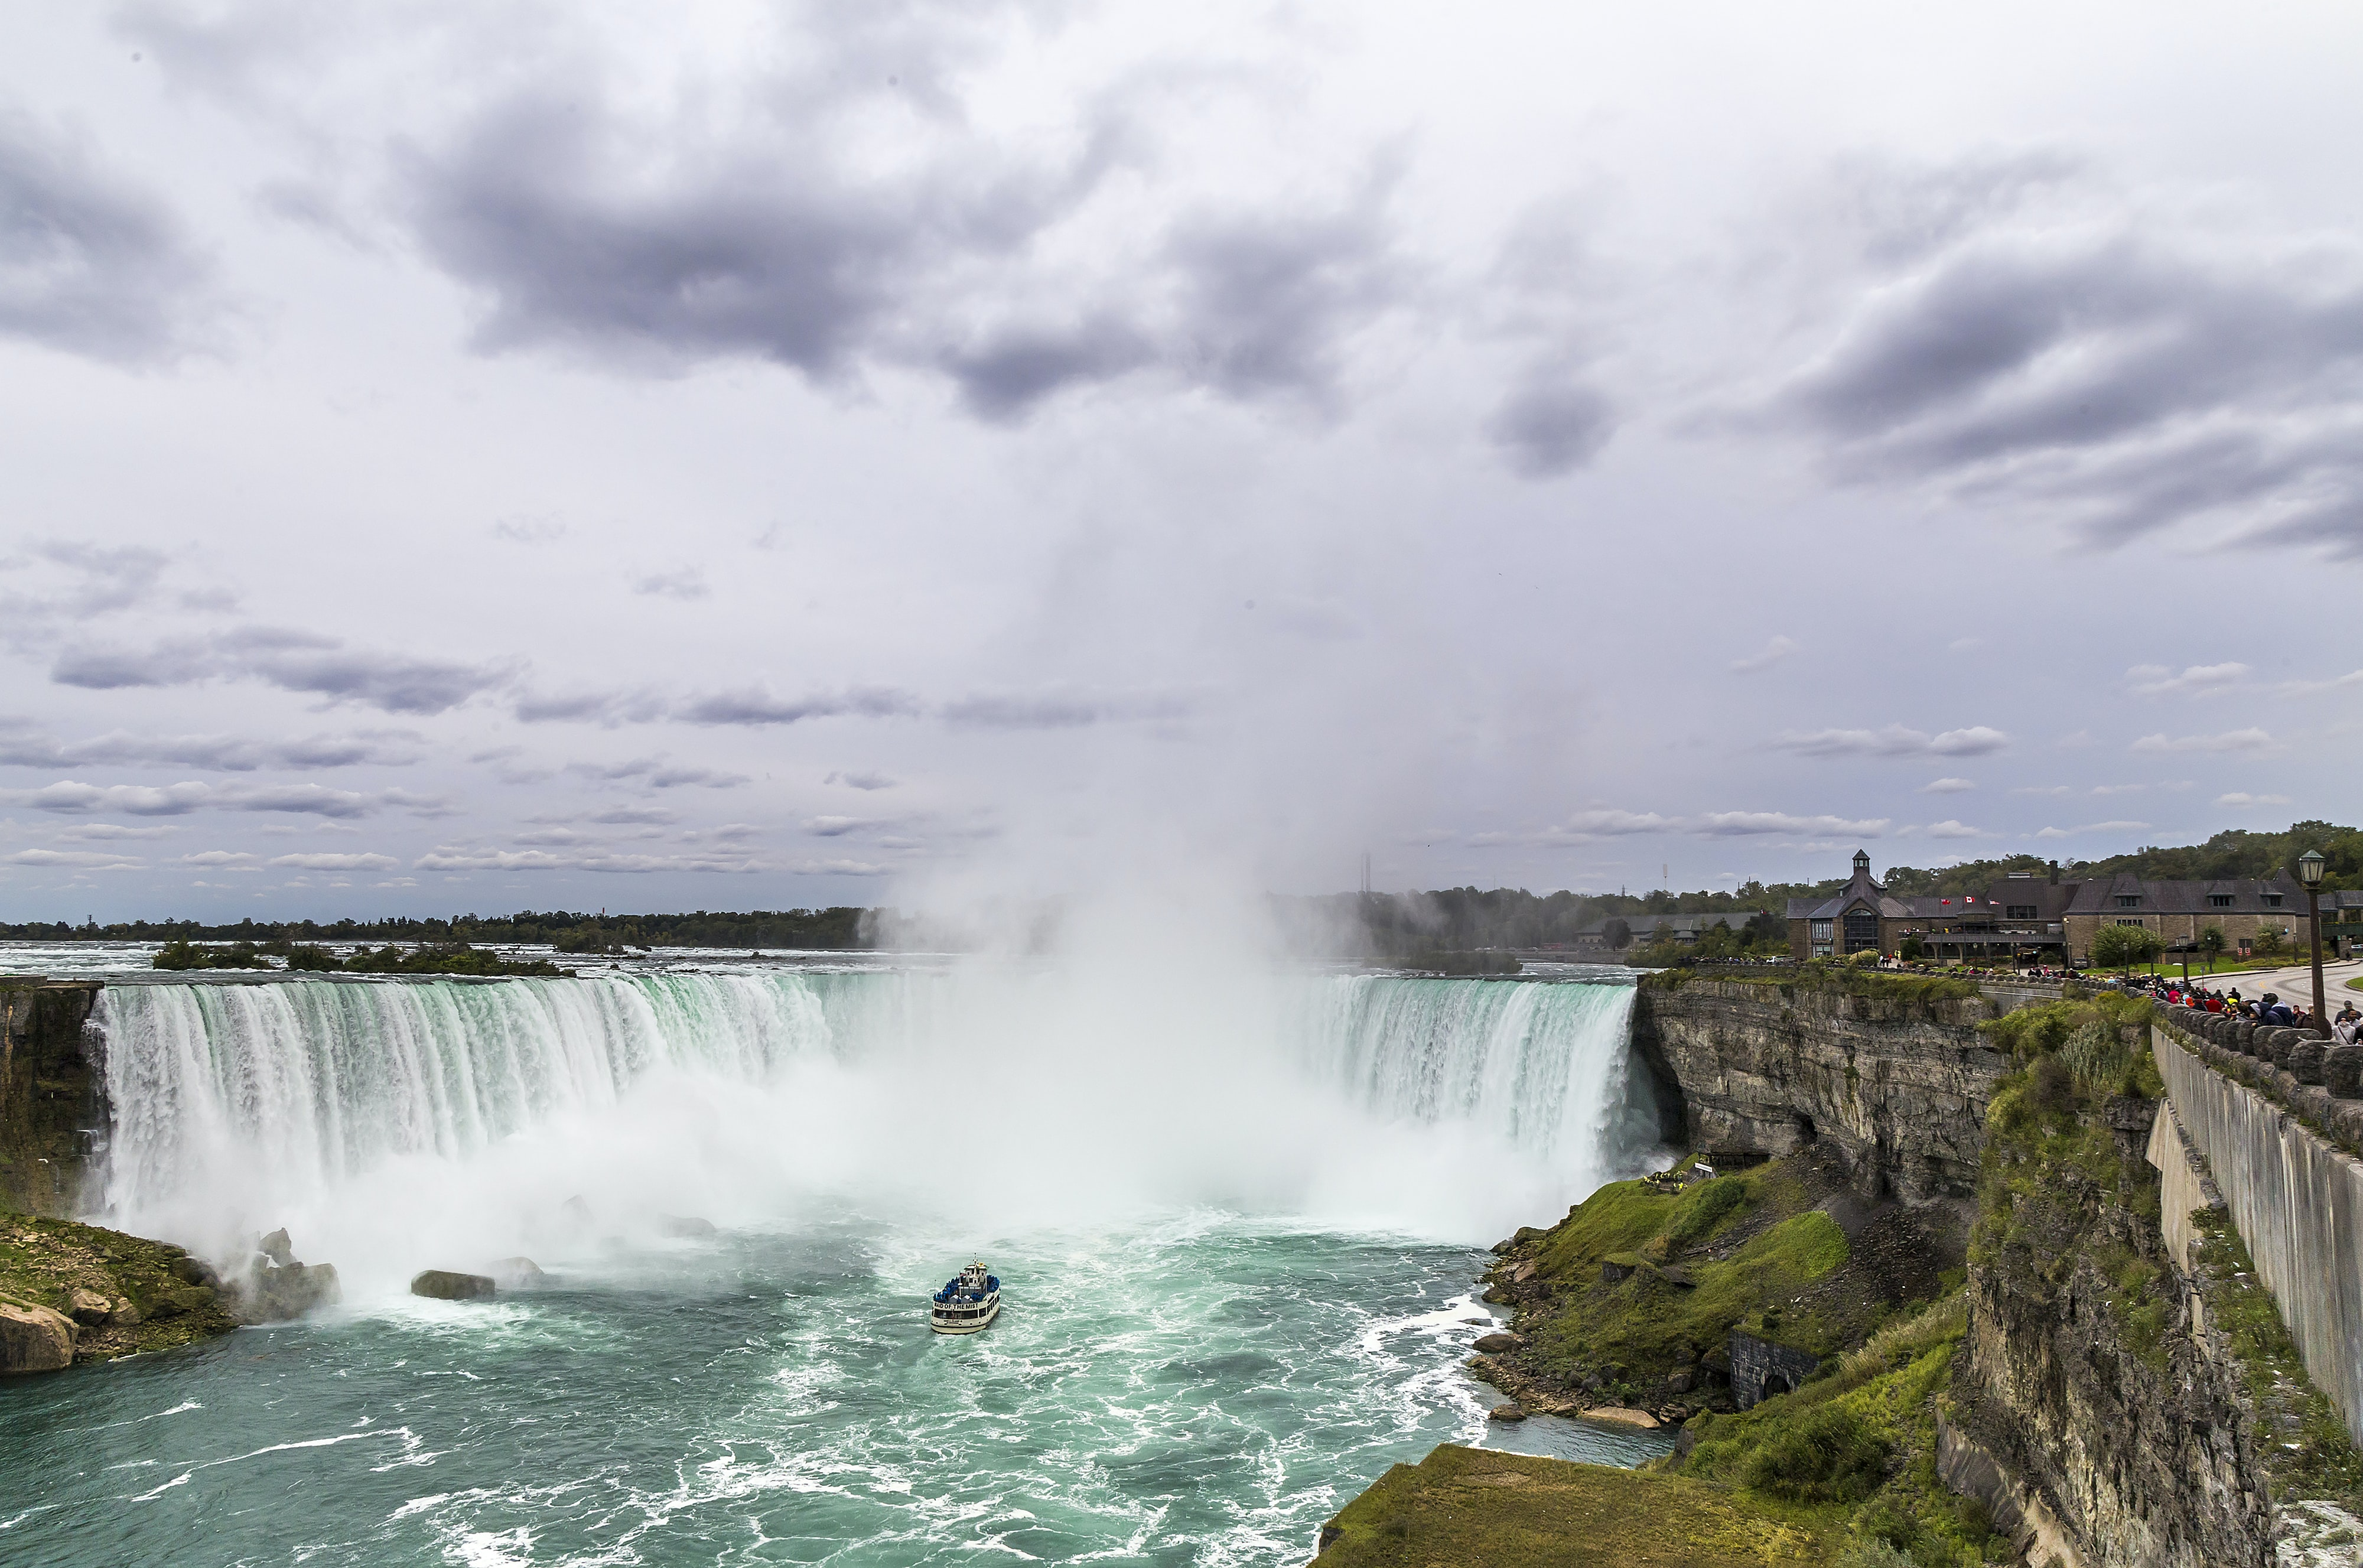 An impressive waterfall tumbling down from a rock face next to a town in Niagara Falls